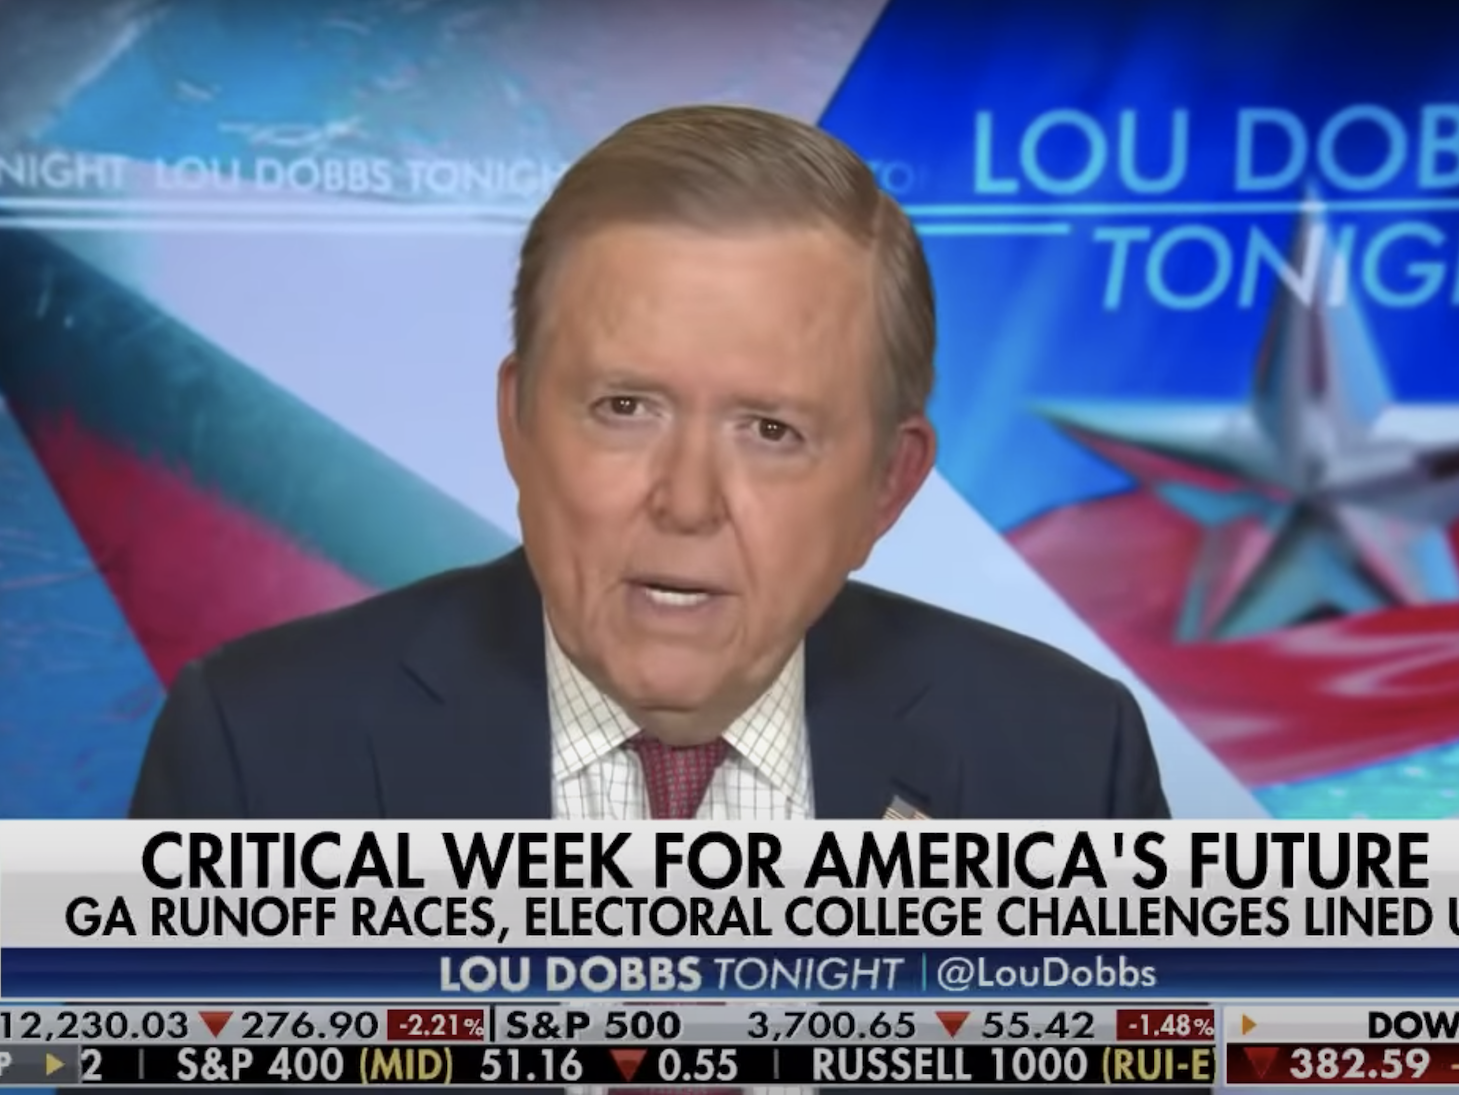 Fox host Lou Dobbs complained that he can't secure 'accurate proof' of voter fraud, nevertheless kept pushing the discredited idea anyway